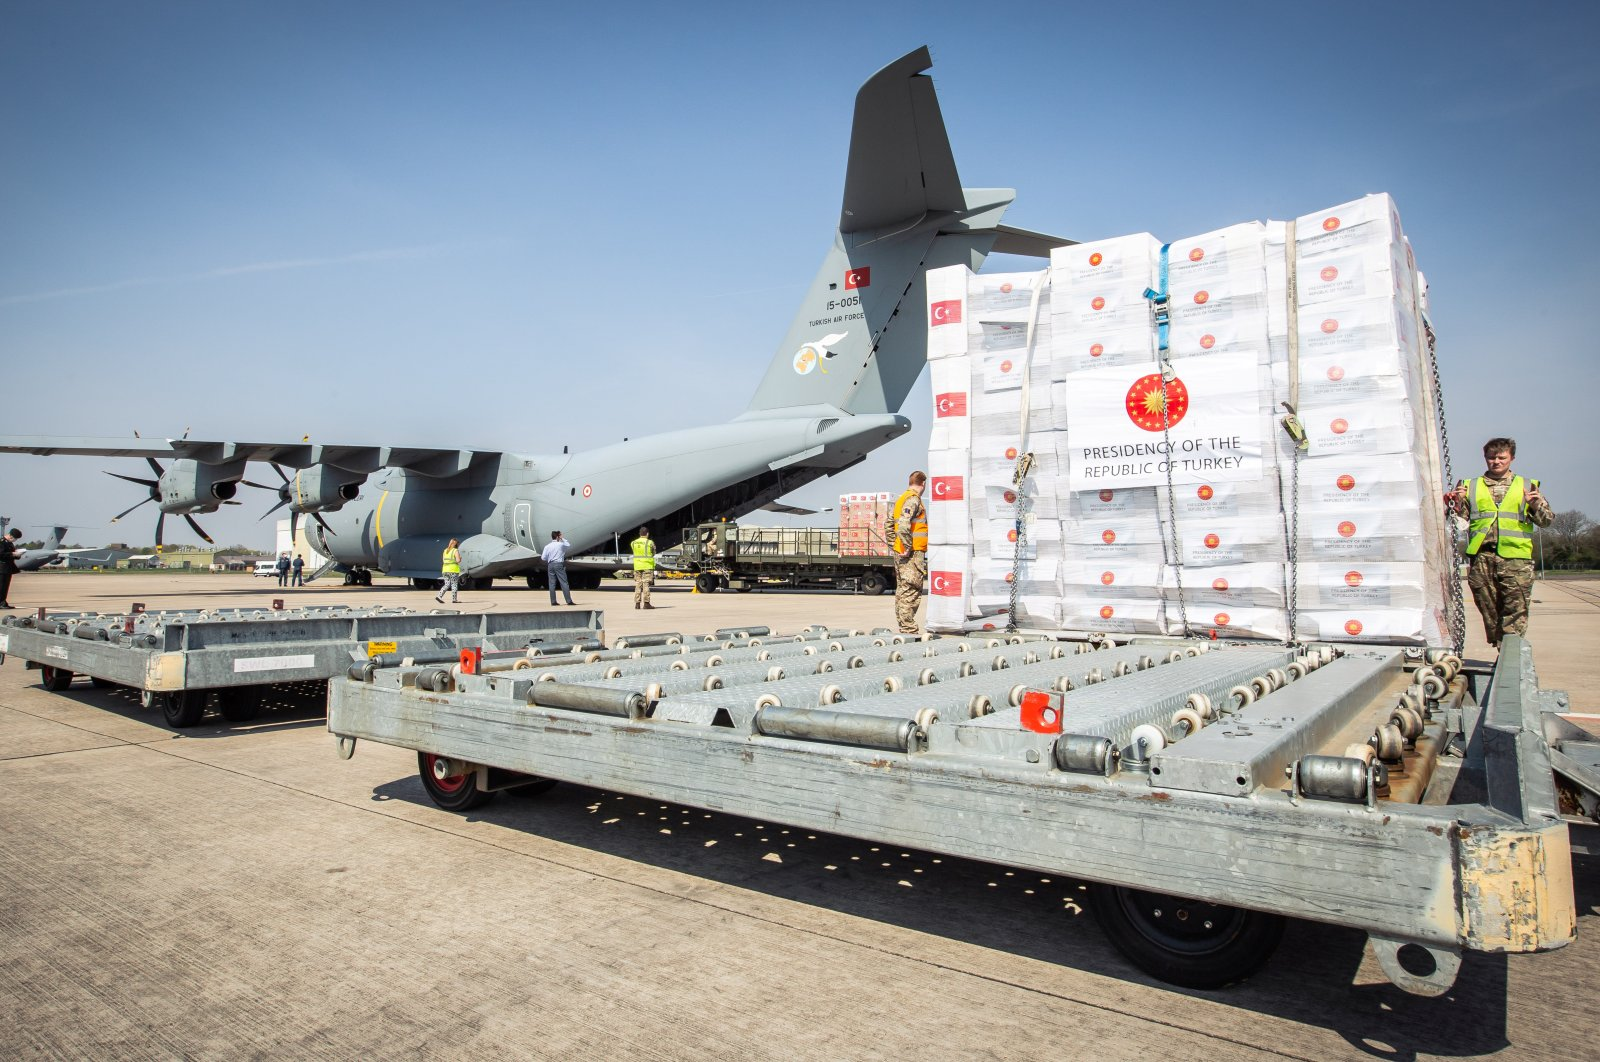 Turkey has provided humanitarian supplies to nearly 130 countries during the pandemic, making it the world's third-largest provider of aid during the global crisis. (REUTERS Photo)